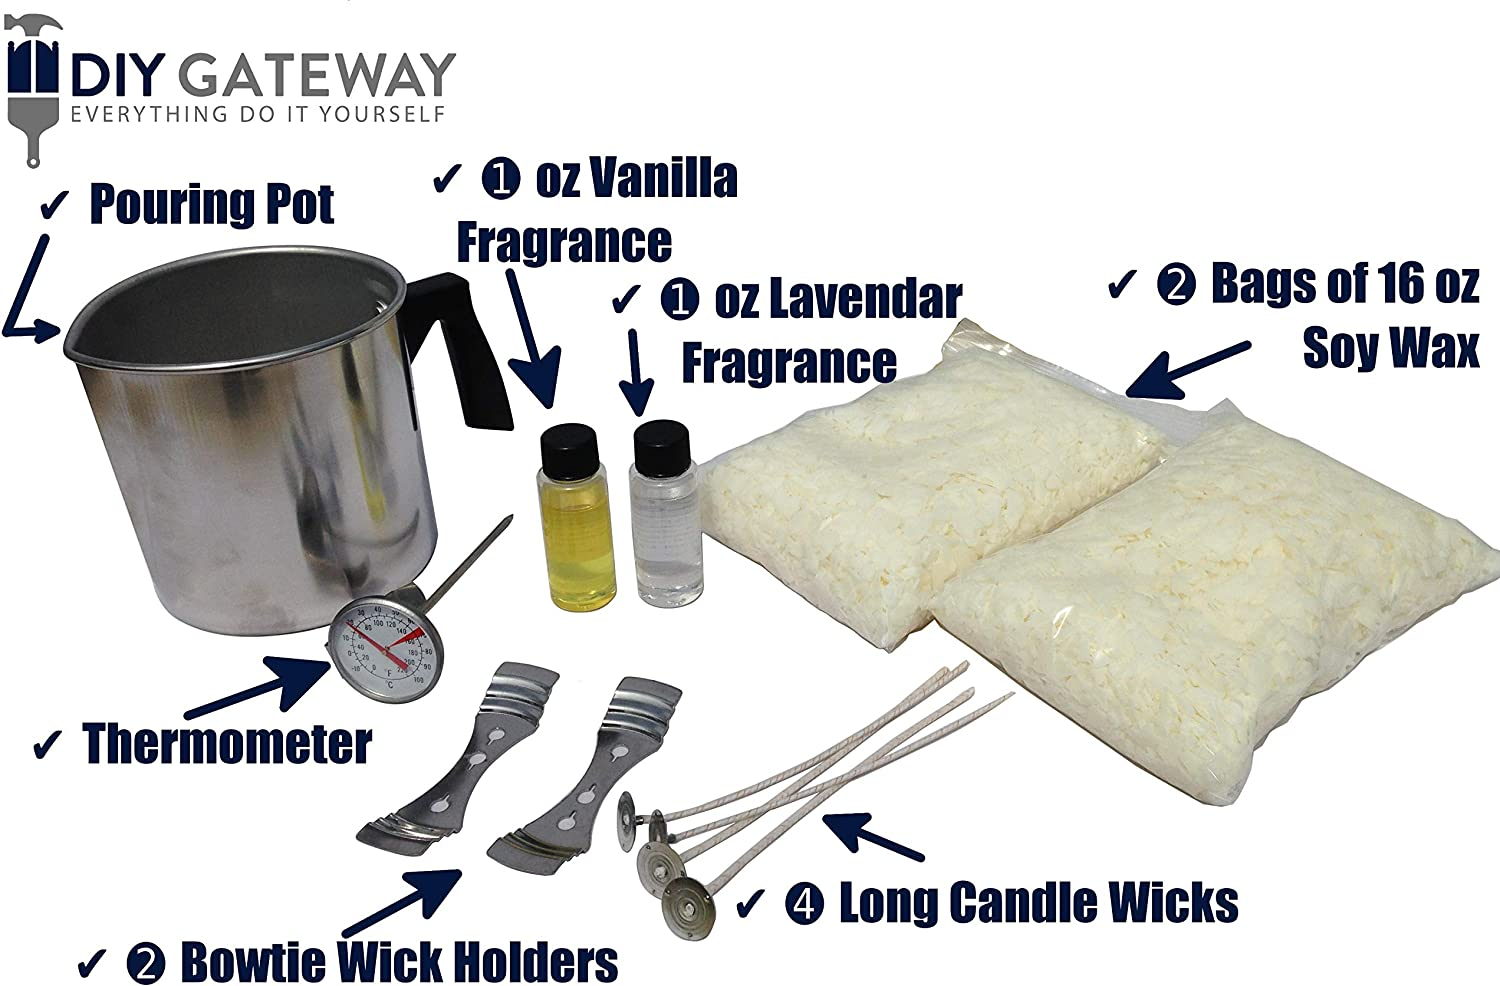 Wicks Thermometer /& Pitcher Vanilla /& Lavender Scents Soy Candle Making Kit /& Supplies: Complete DIY Set with 2 LB Soy Wax Holders